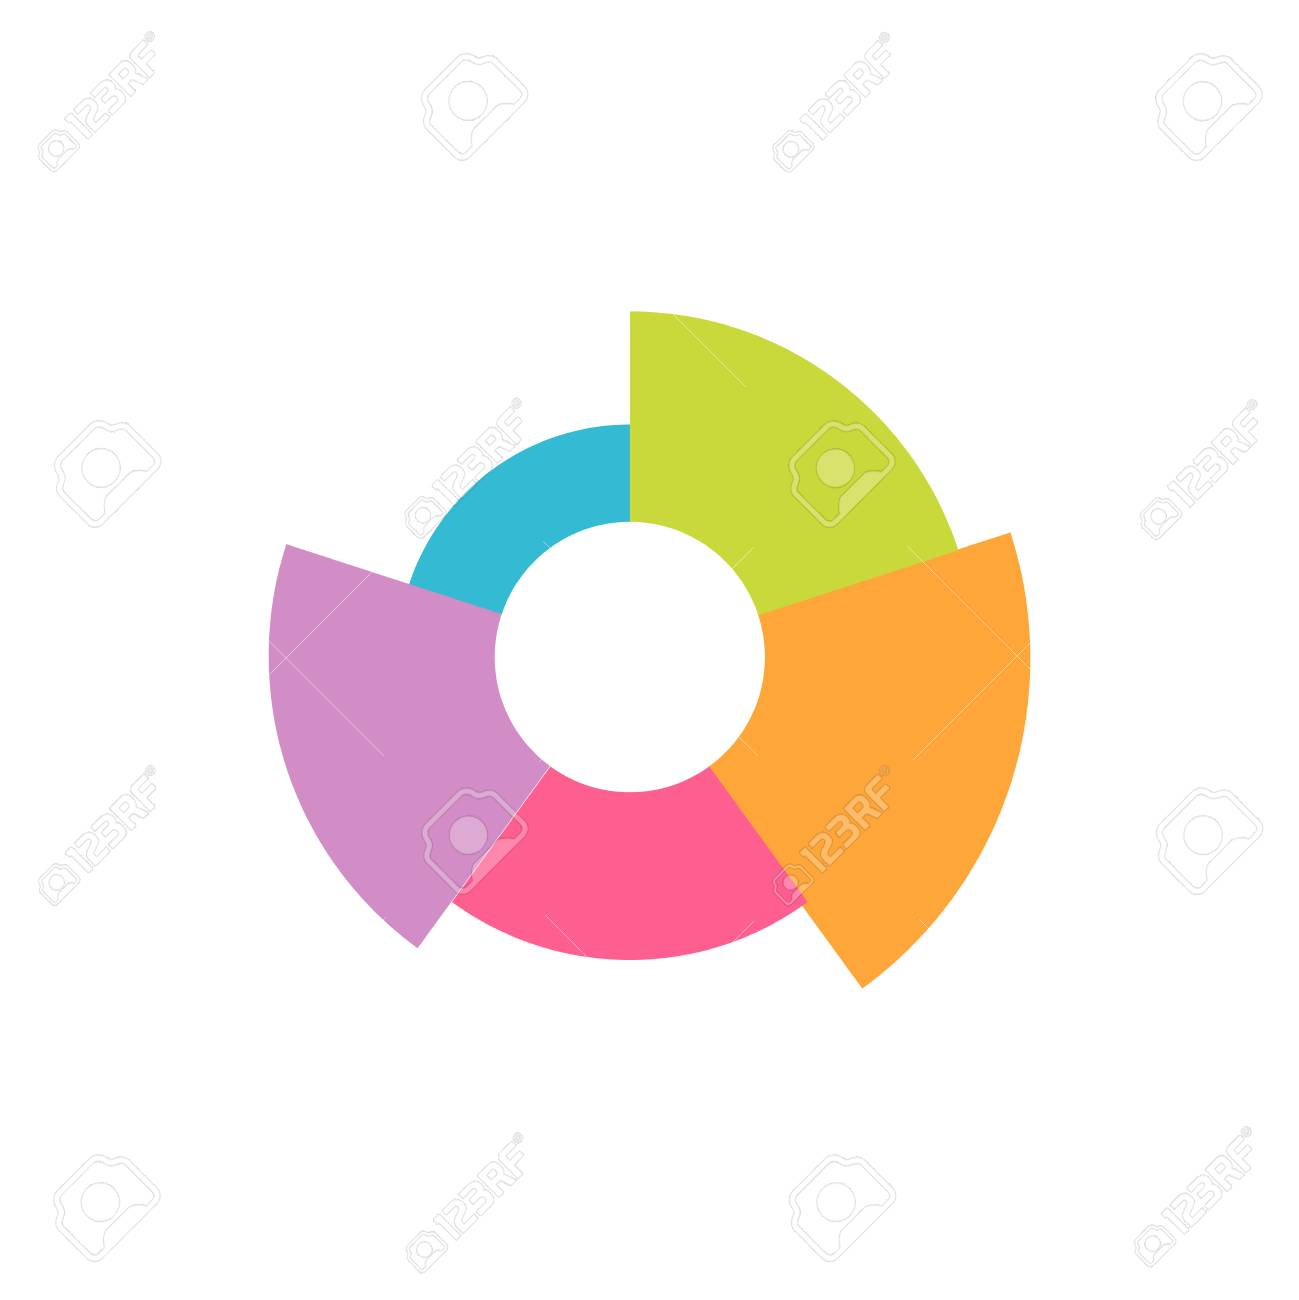 Pie chart icon or logo in modern flat style high quality black banco de imagens pie chart icon or logo in modern flat style high quality black pictogram for web site design and mobile apps vector illustration on a ccuart Images